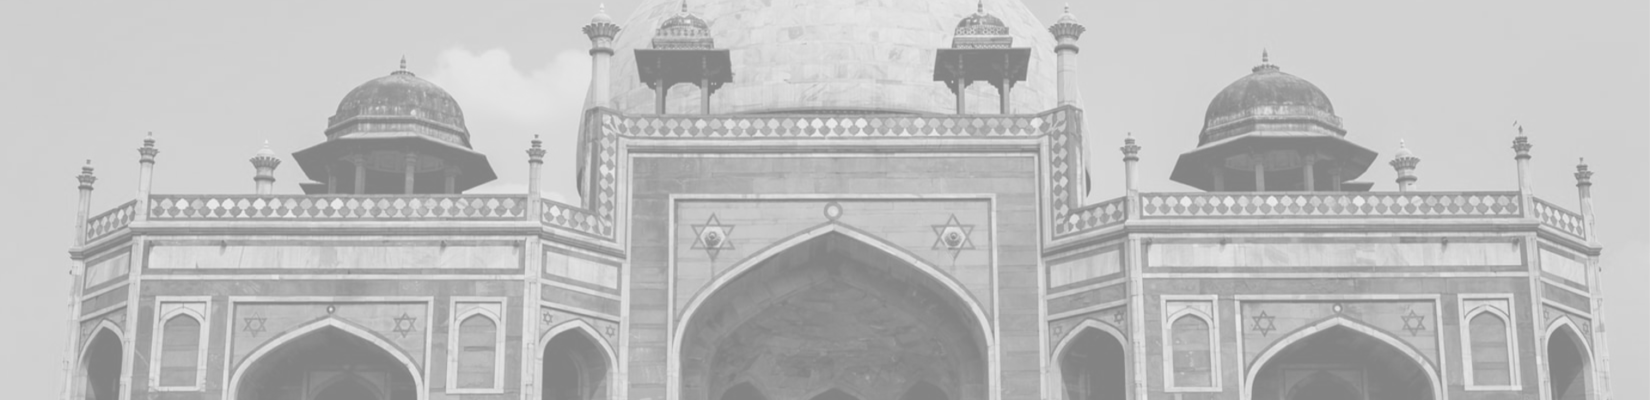 Transparent-Gray Background of Humayun's Tomb in India